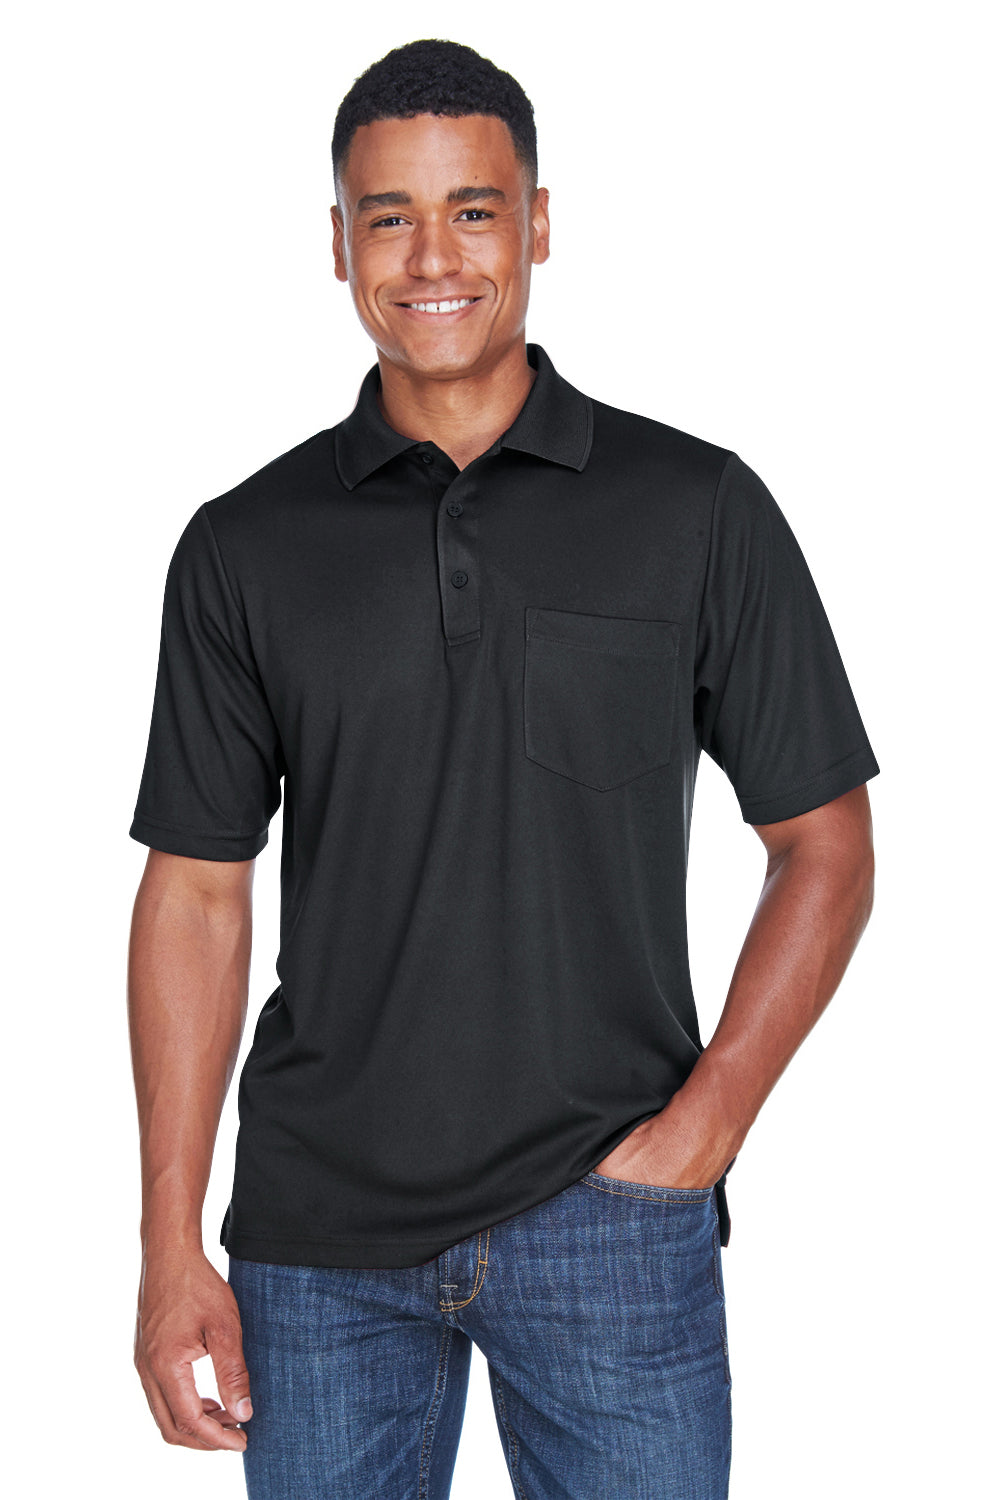 Core 365 88181P Mens Origin Performance Moisture Wicking Short Sleeve Polo Shirt w/ Pocket Black Front